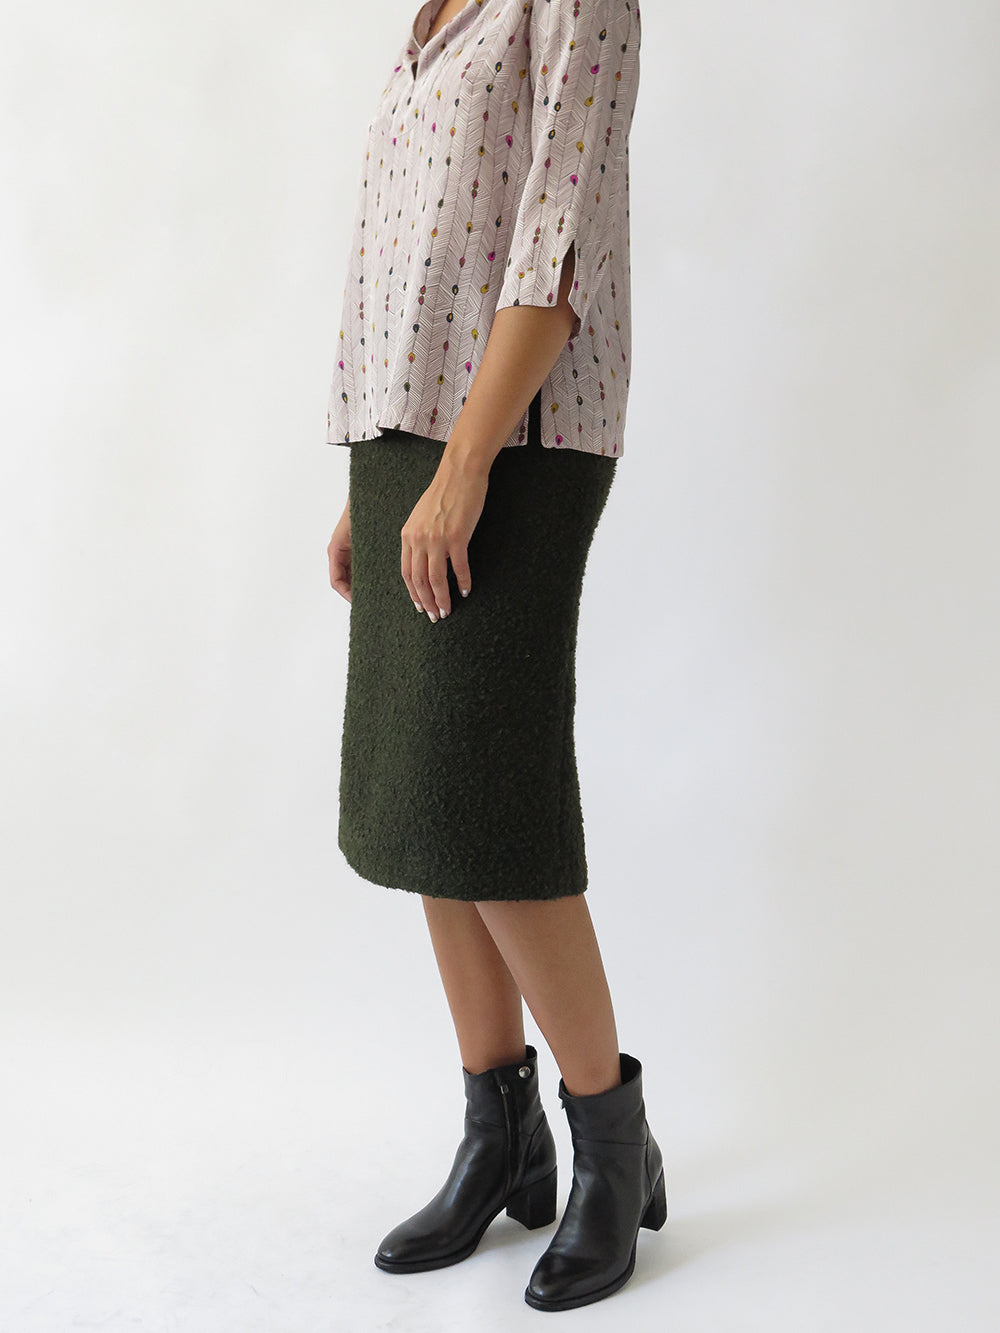 jade skirt in army